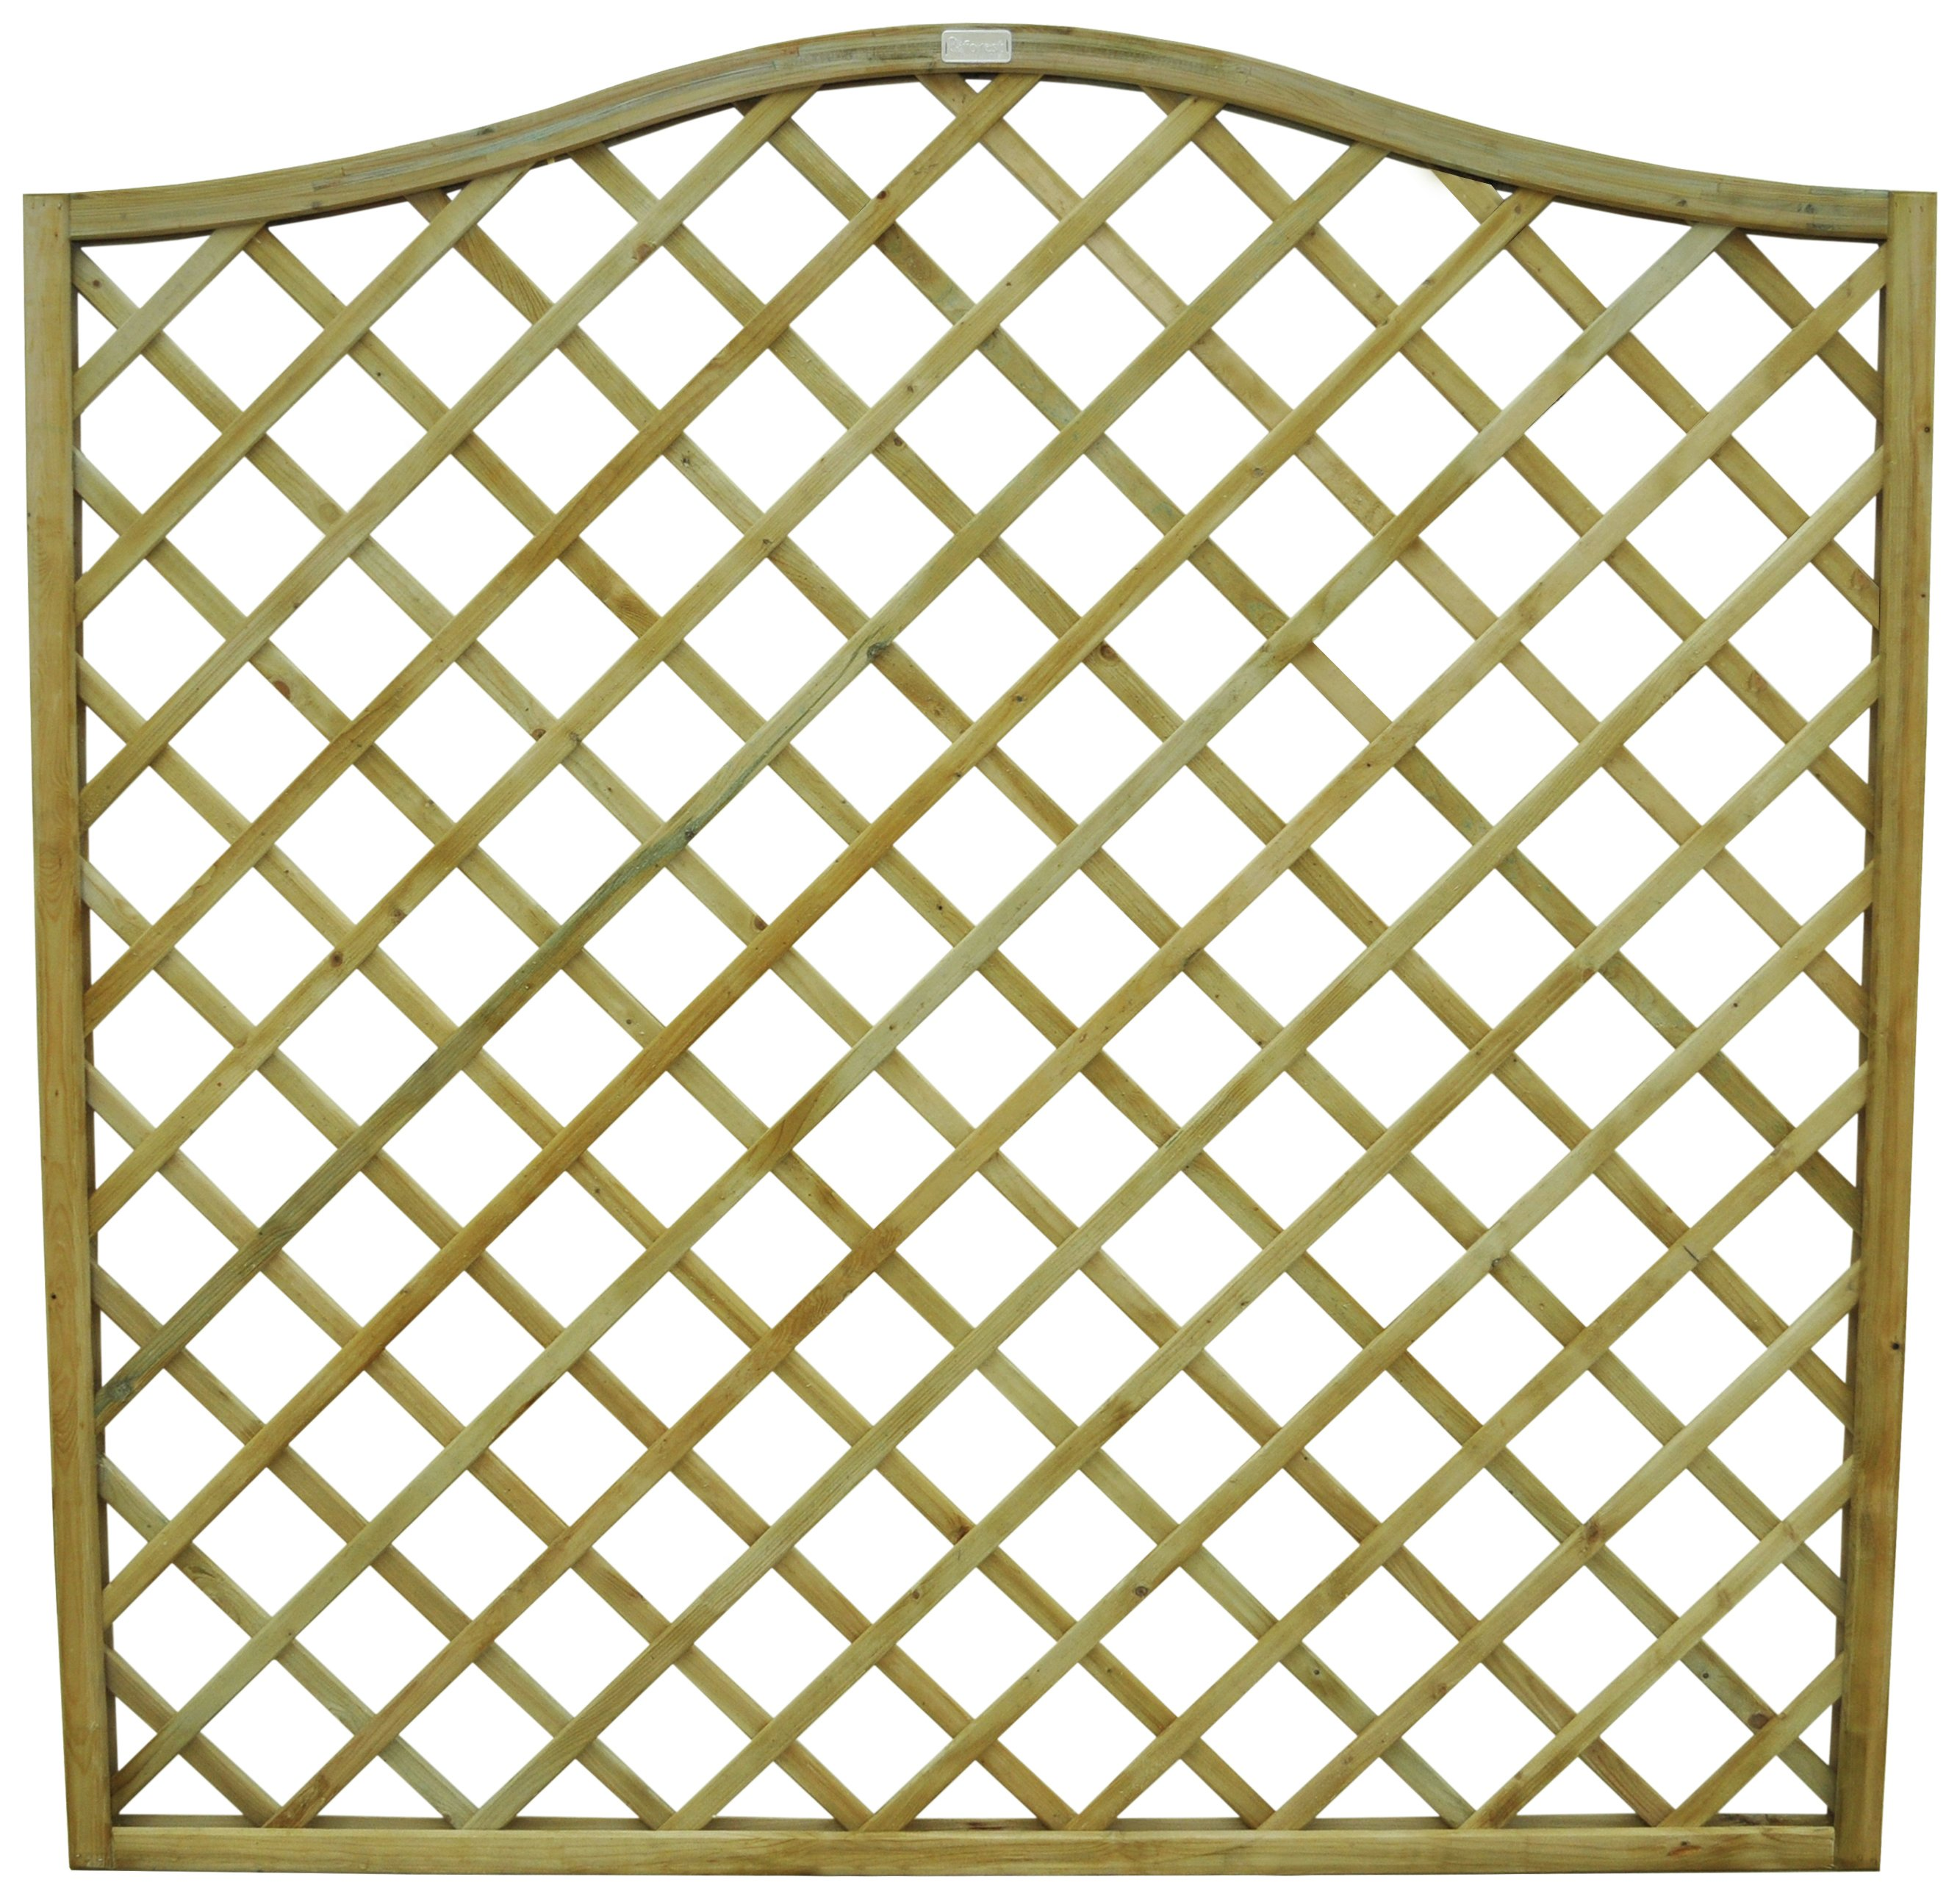 Forest Hamburg Large Garden Screen - Pack of 4. lowest price